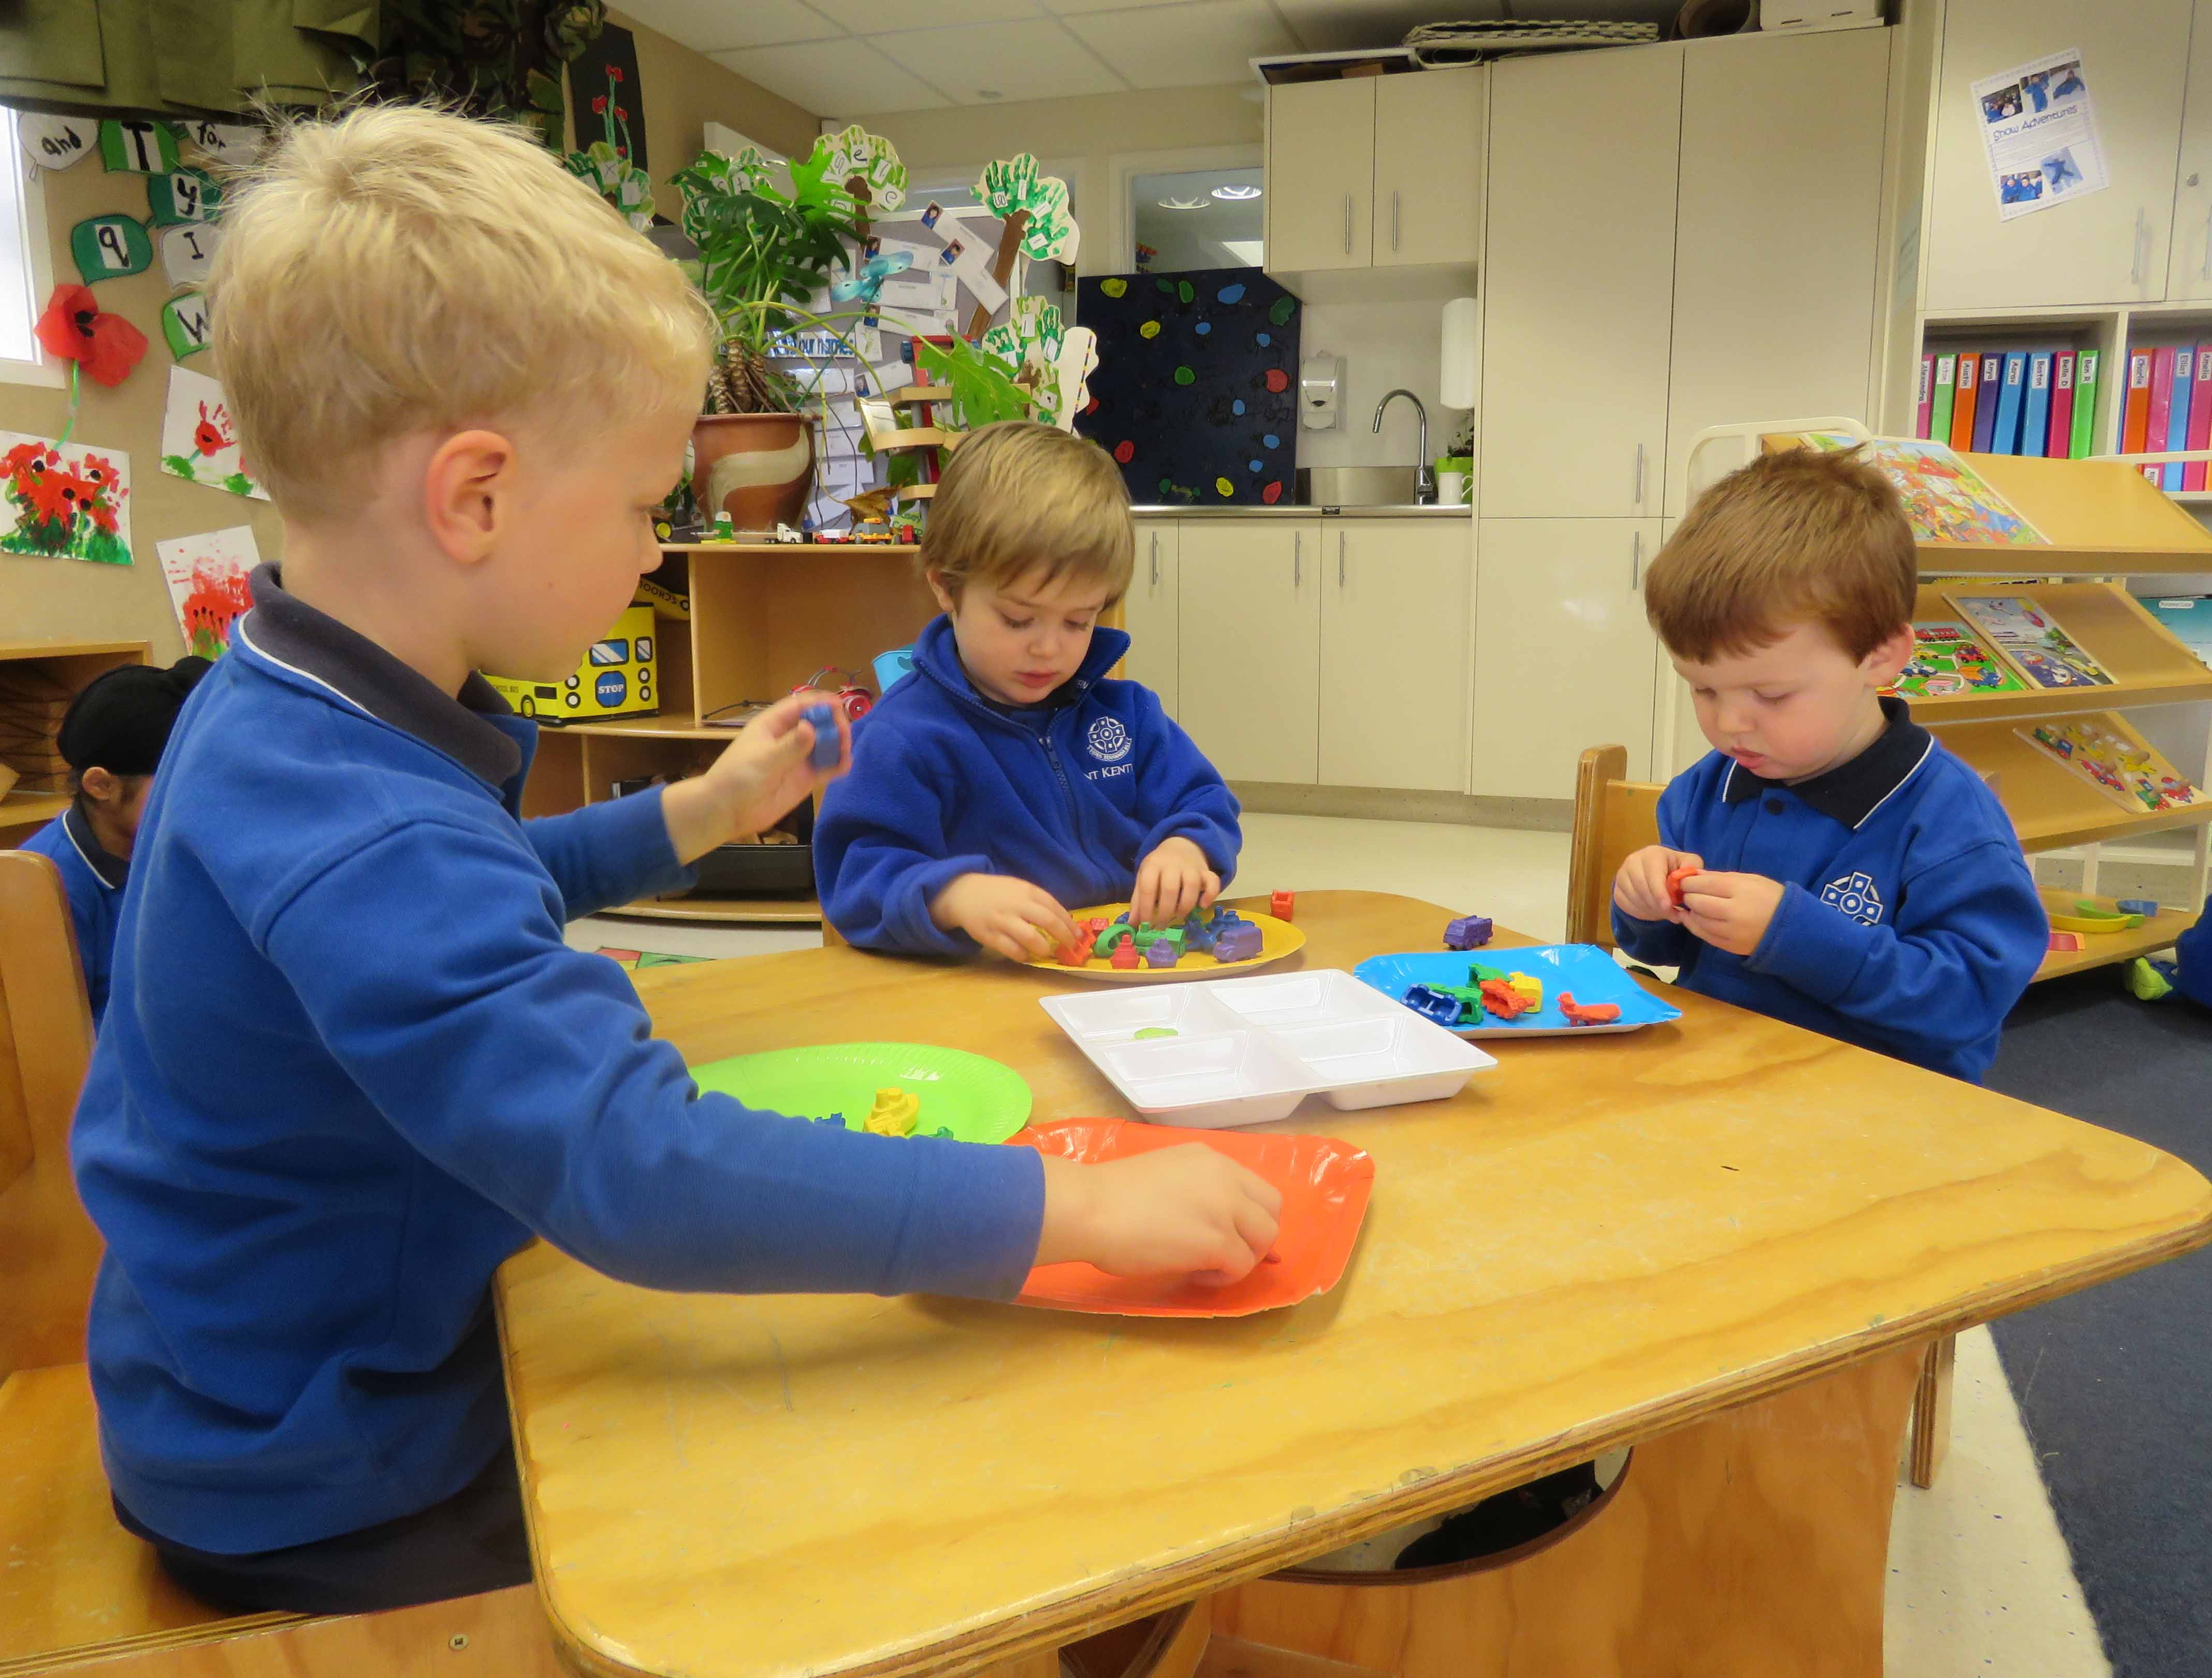 Saint Kentigern Christian Preschool.jpg